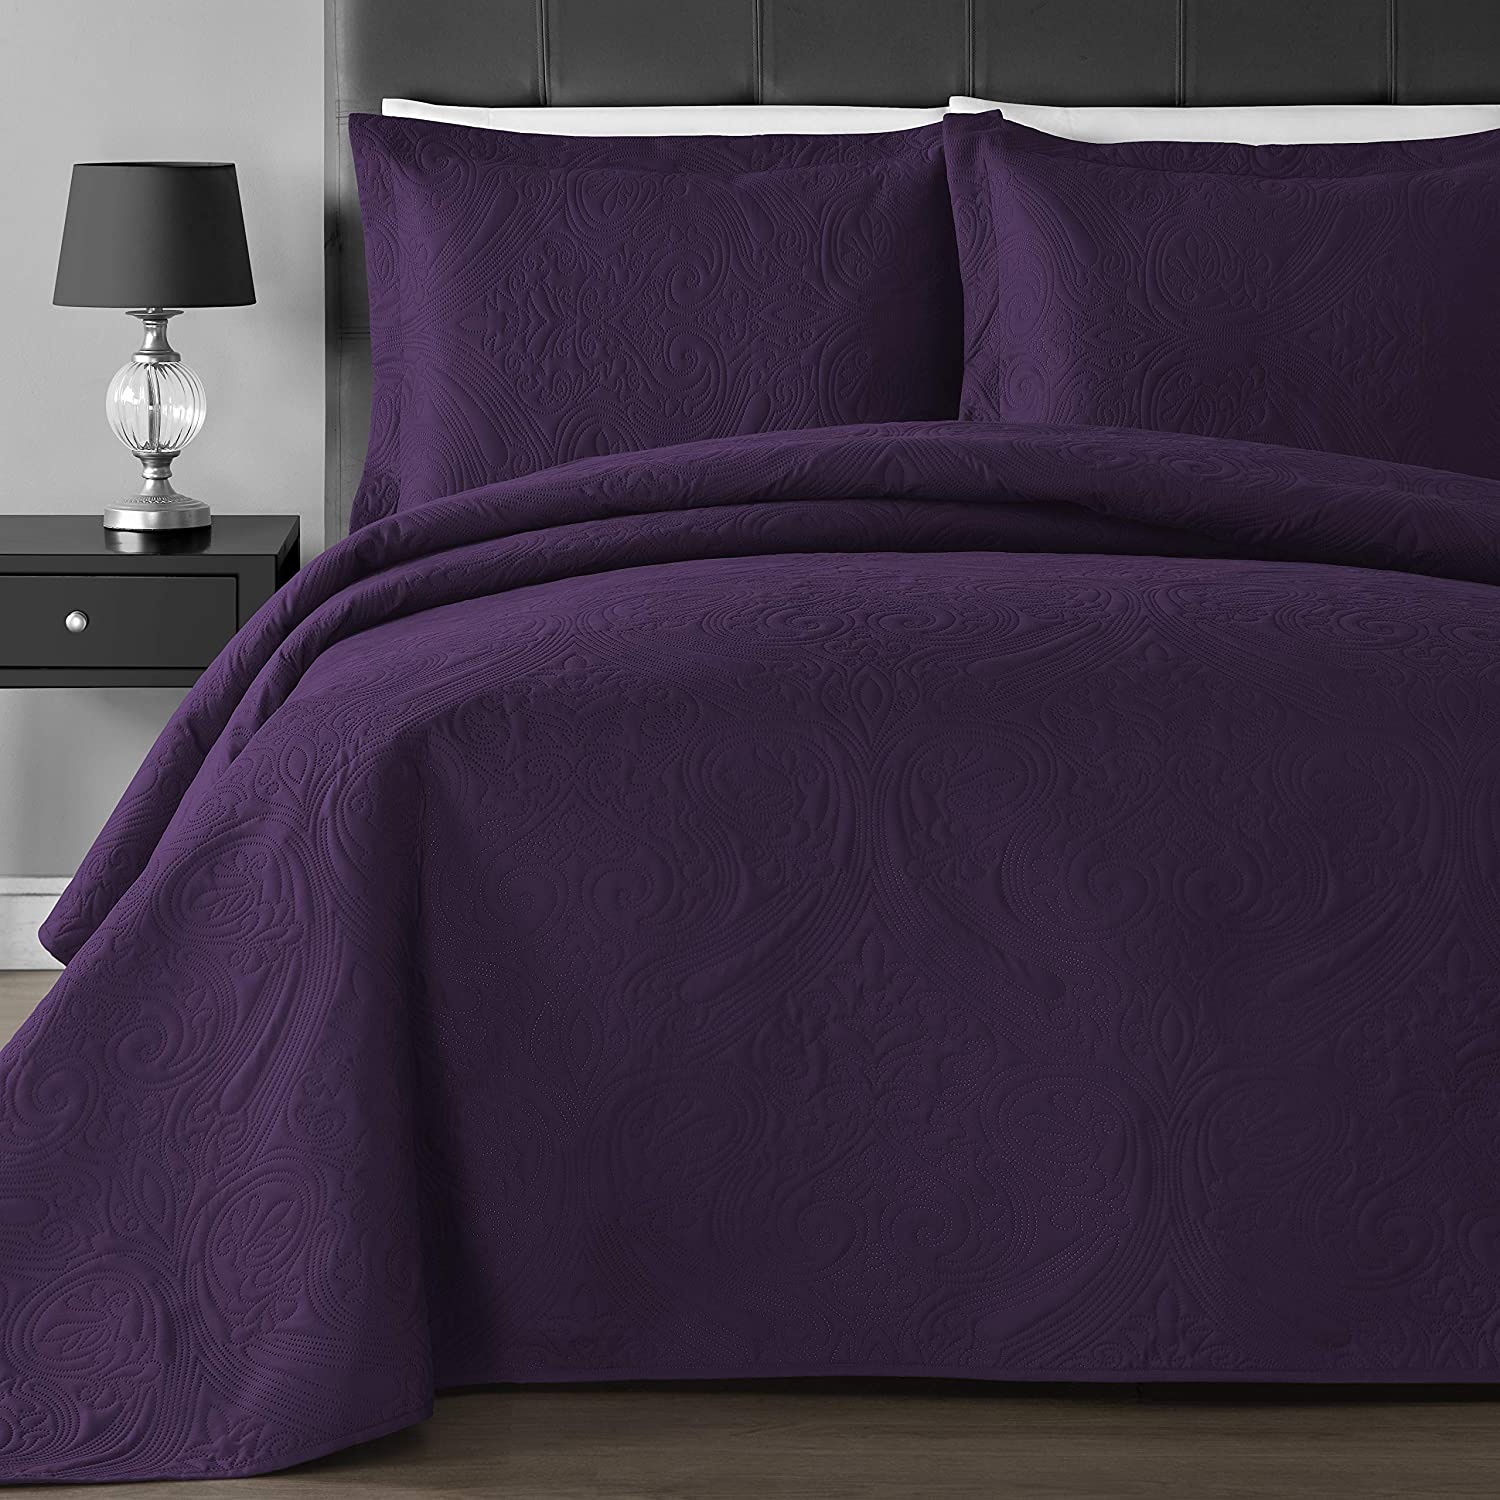 Comfy Bedding Extra Lightweight and Oversized Thermal Pressing Floral 3-Piece Coverlet Set (King/Cal King, Plum)